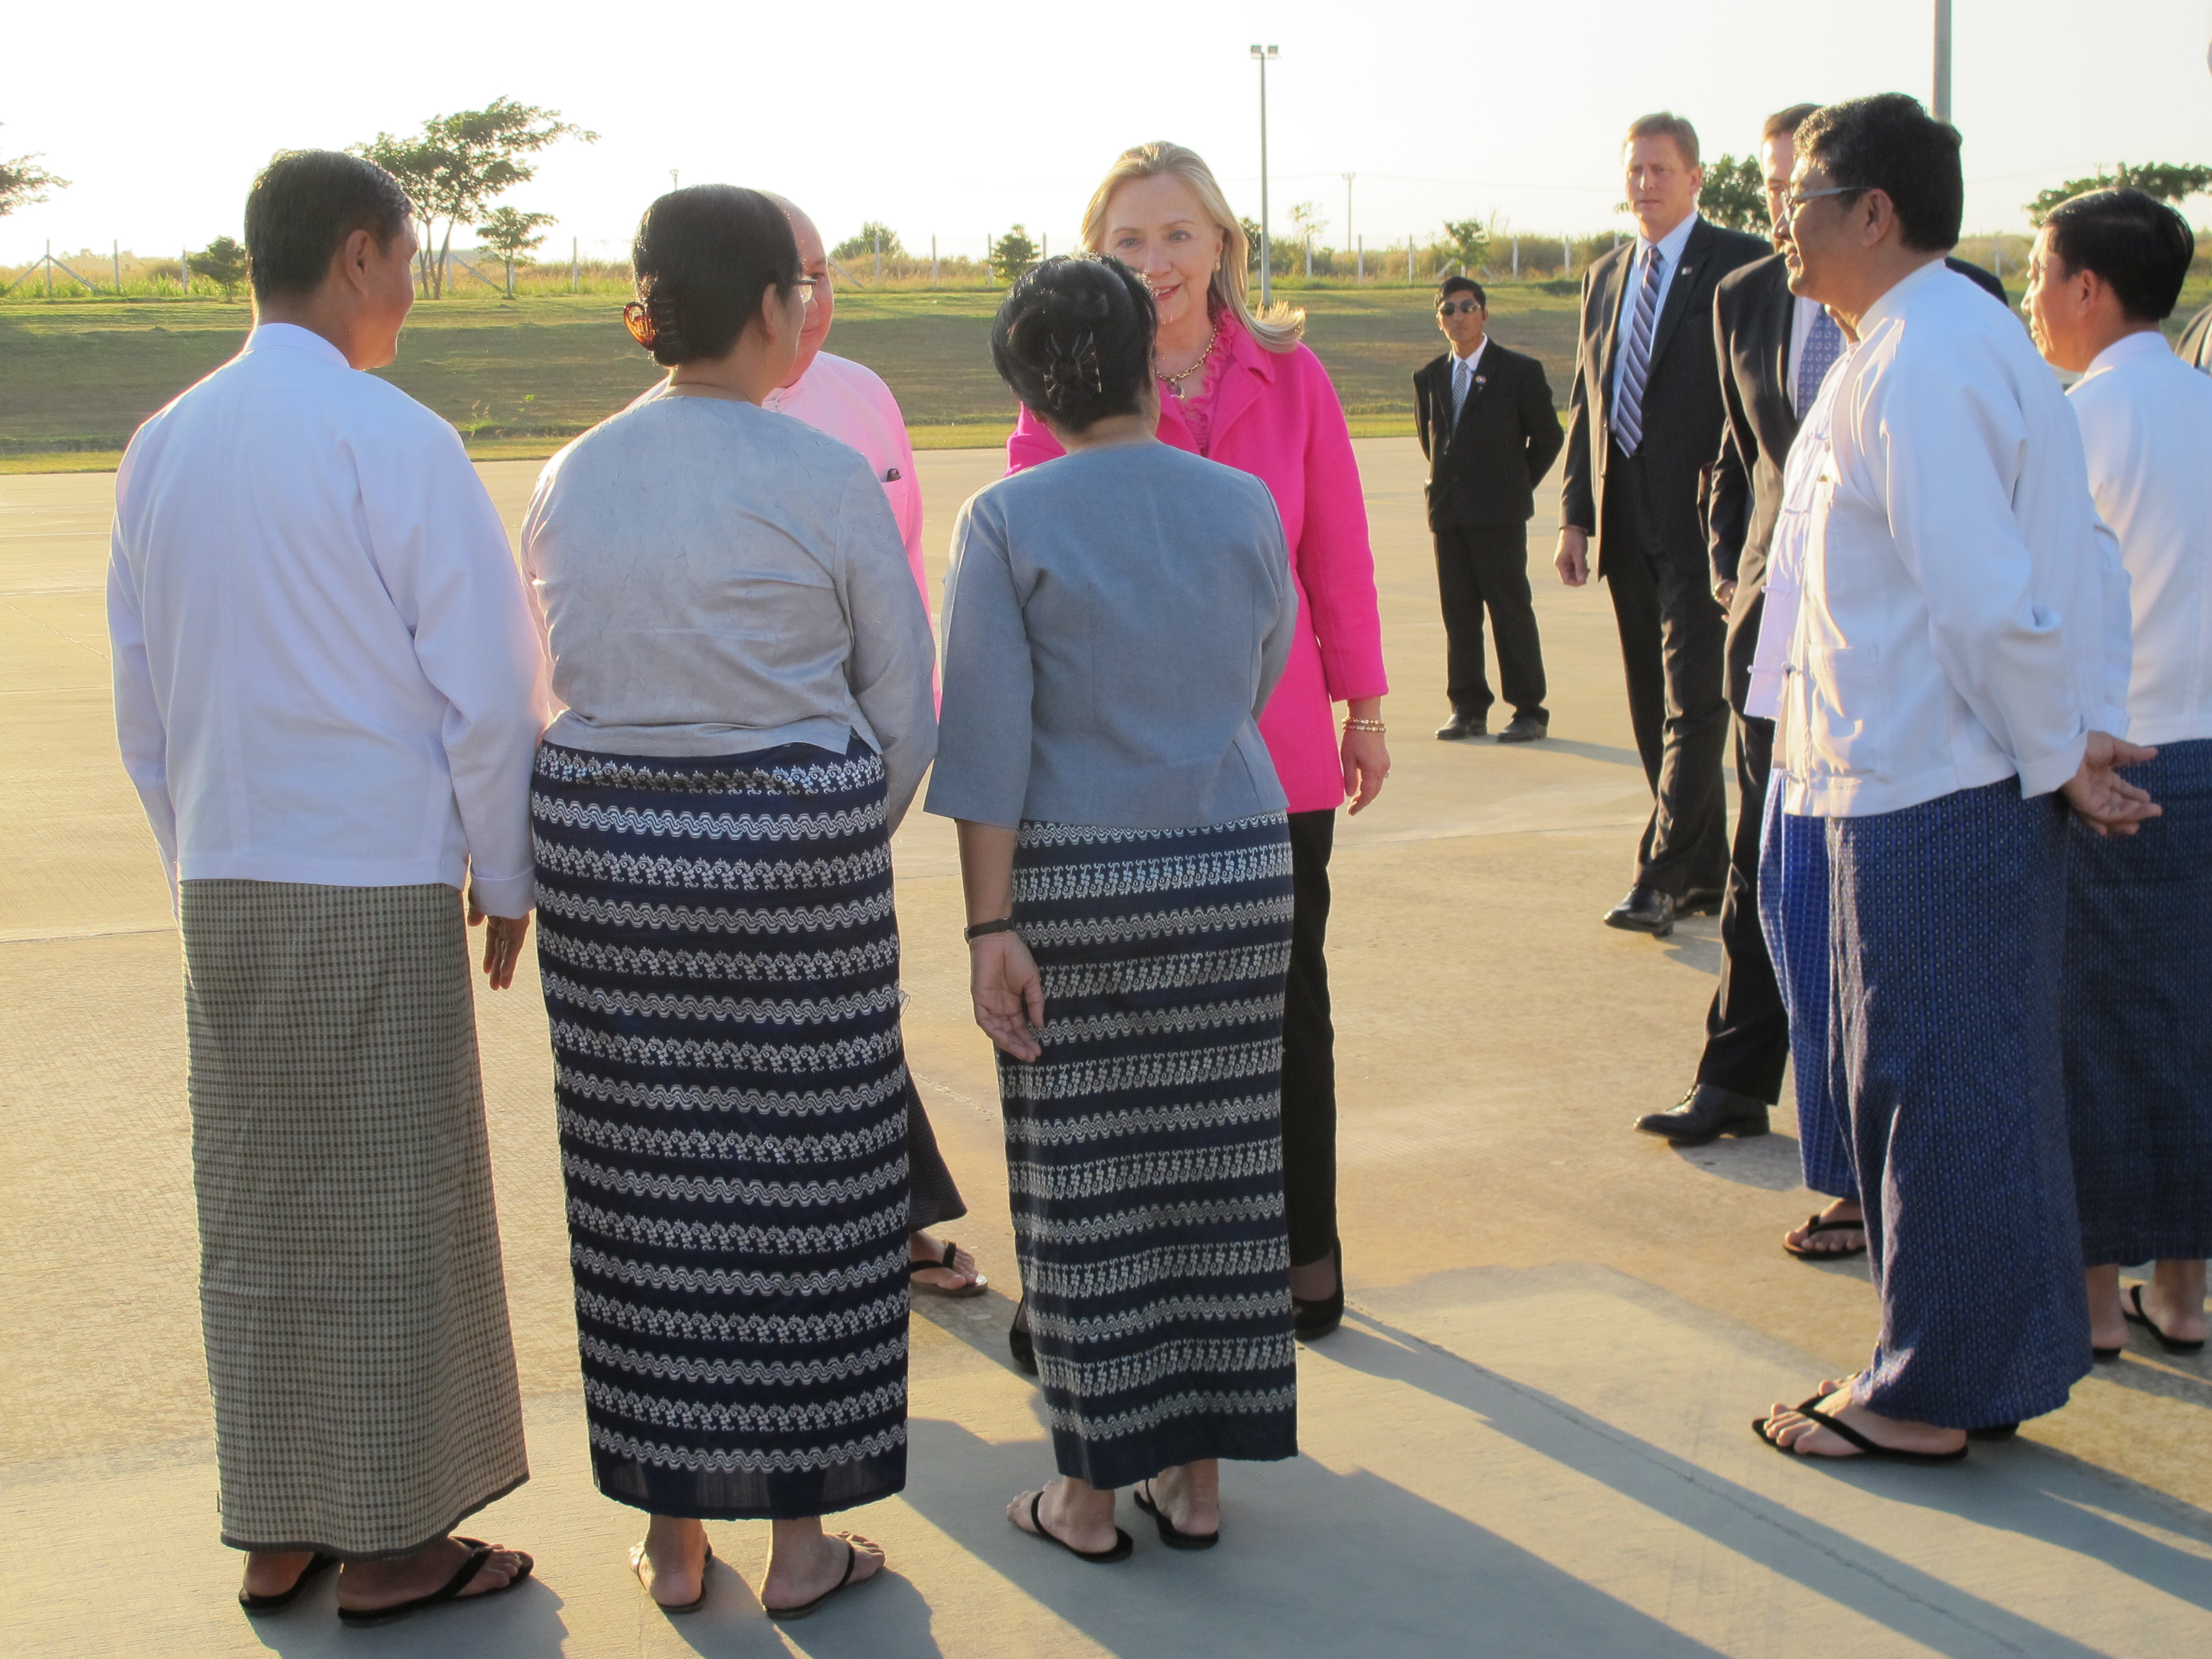 Clinton trip &#039;tests the waters&#039; in Myanmar